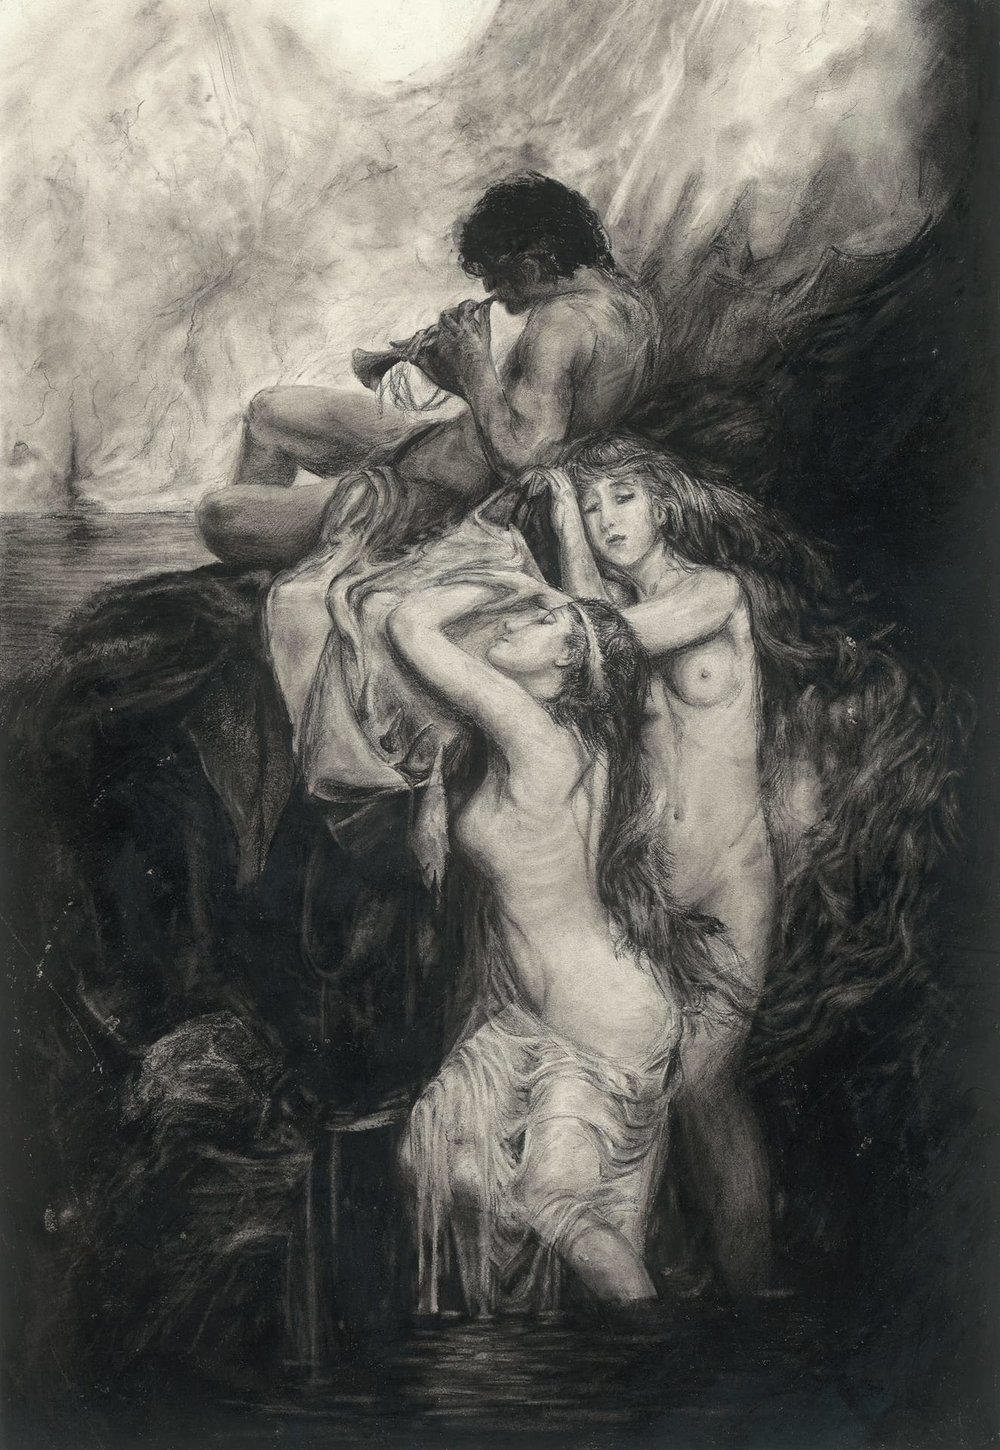 Orpheus Mourning - Reprint Available For Purchase